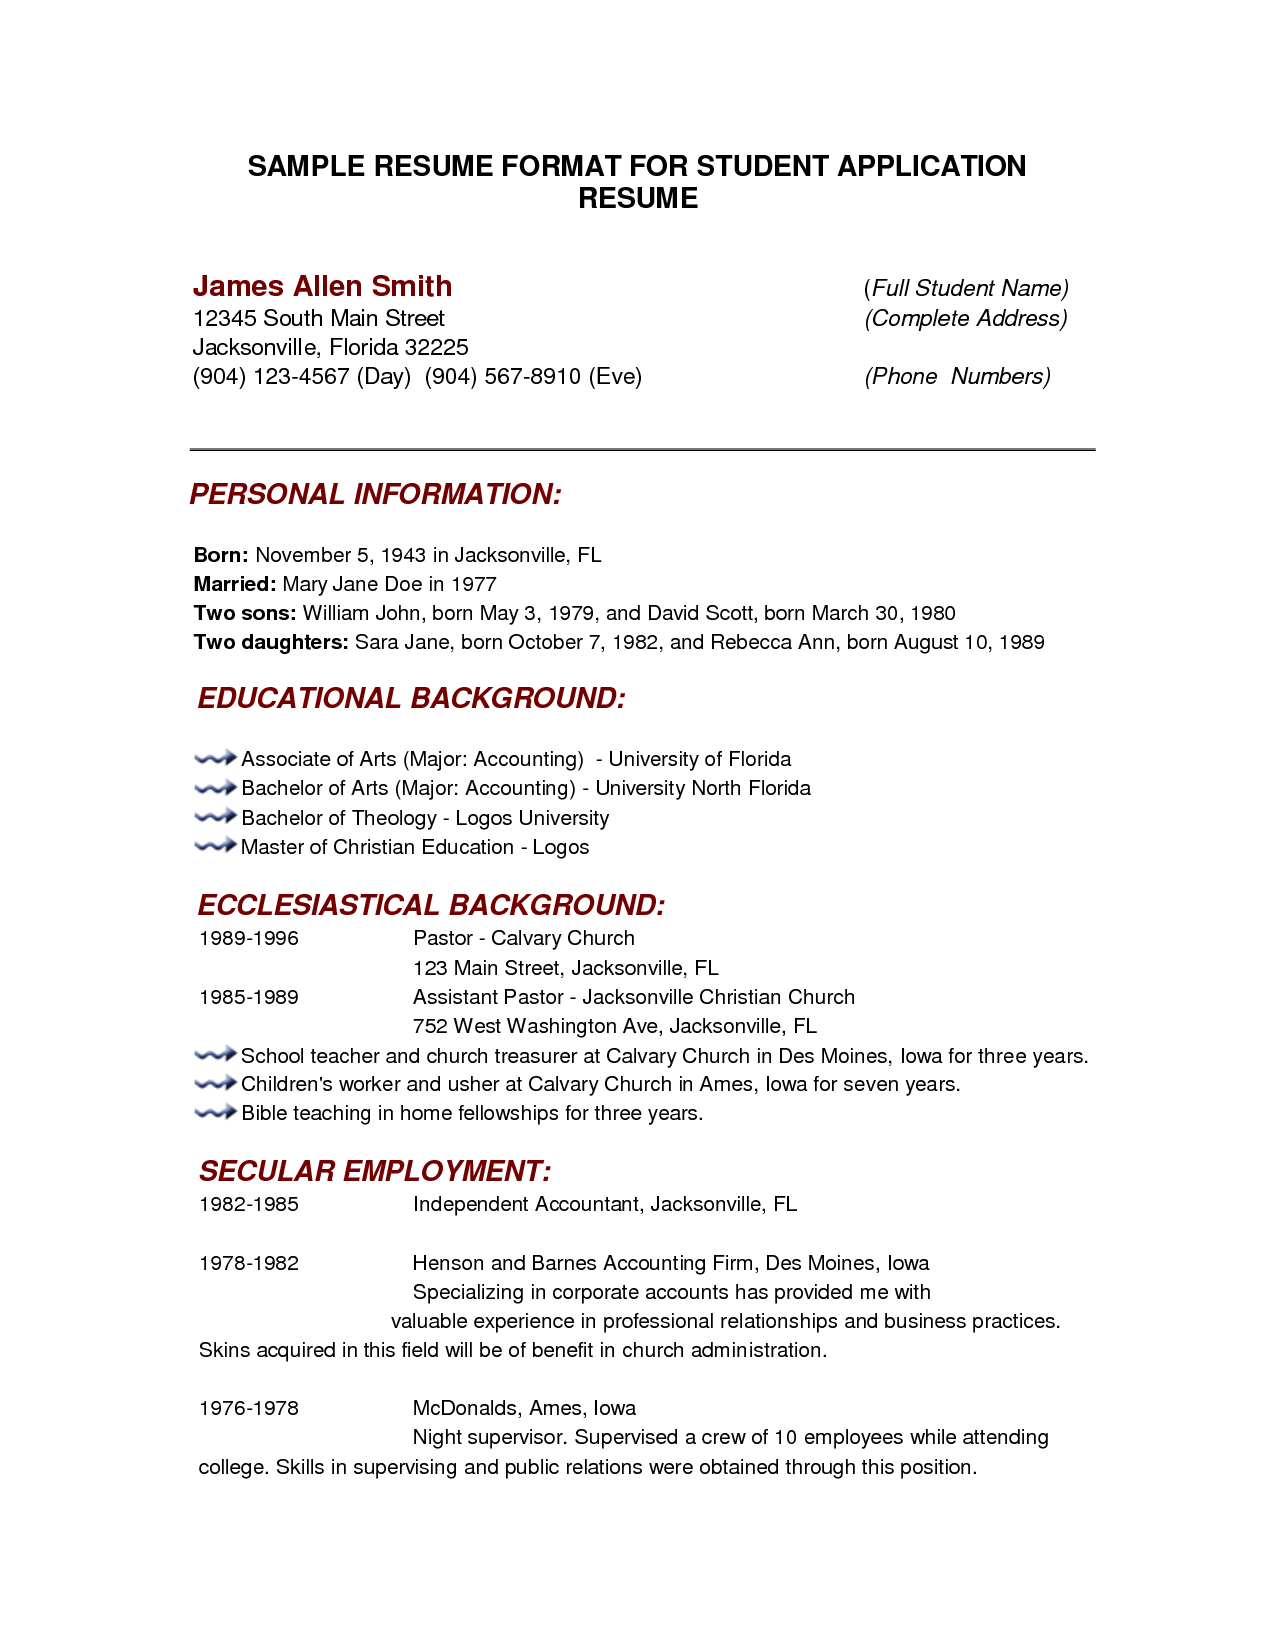 Resume Template For College Students Httpwwwresumecareer - Resume format builder